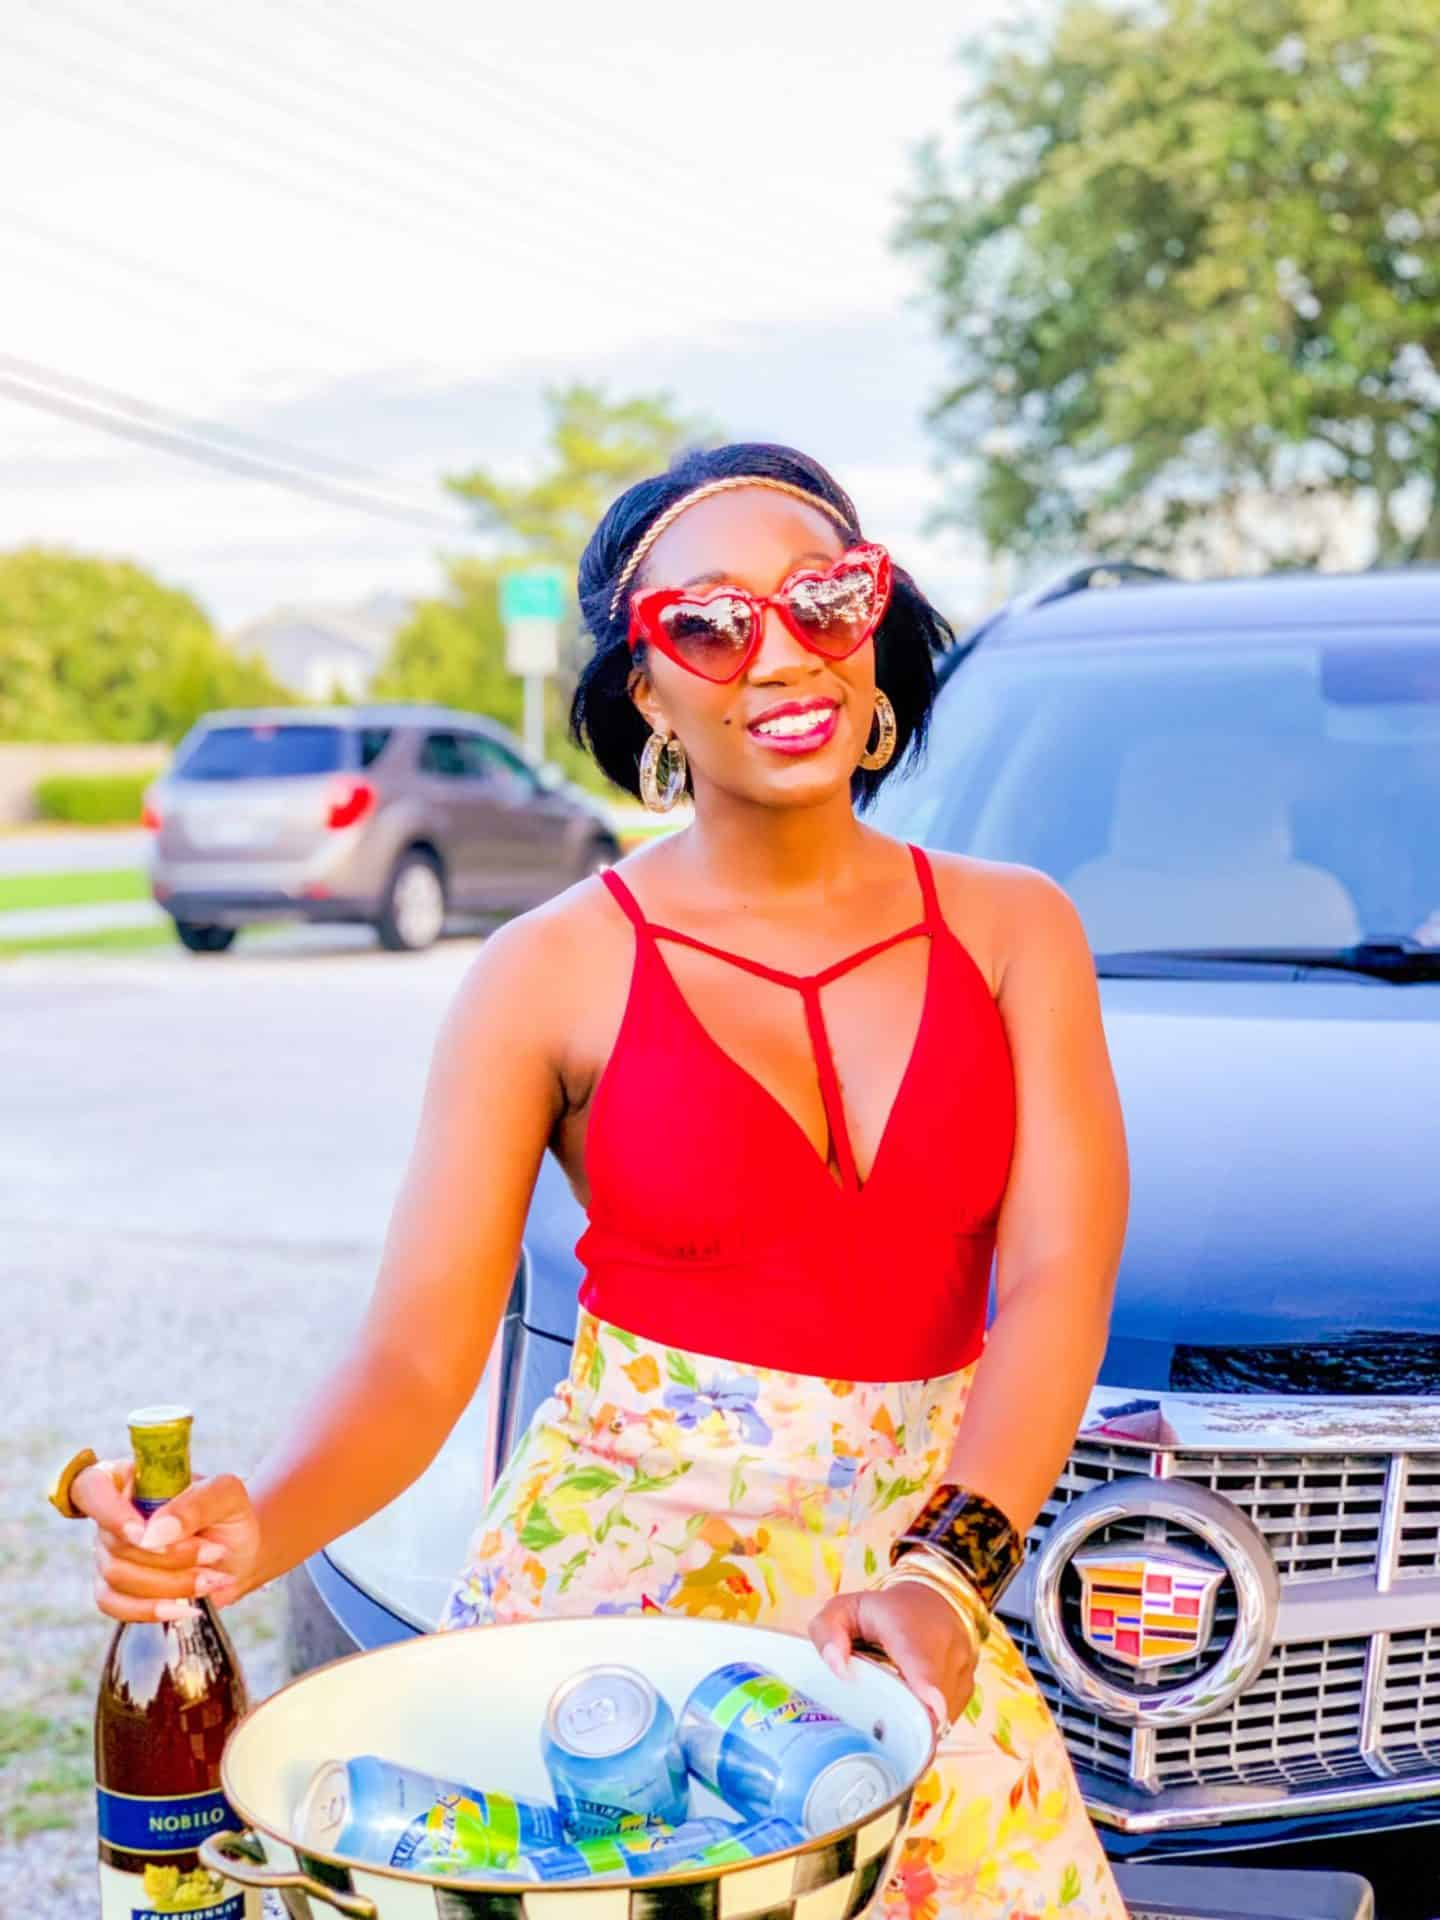 Shaunda Necole Work Hard & Play Harder On Holiday Weekends With Cadillac By The Shore + coastline scenic views